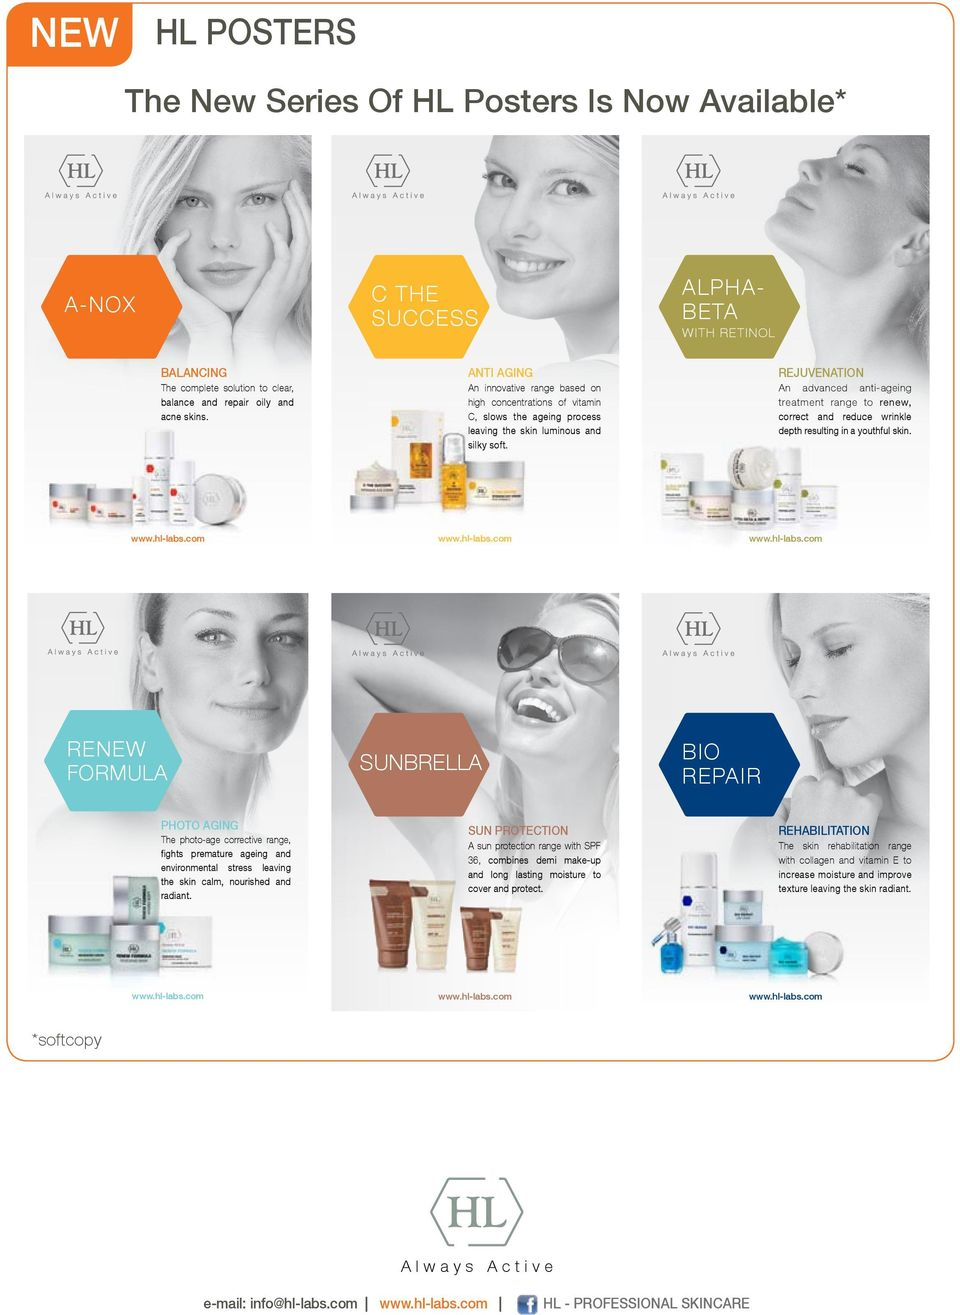 REJUVENATION An advanced anti-ageing treatment range to renew, correct and reduce wrinkle depth resulting in a youthful skin.